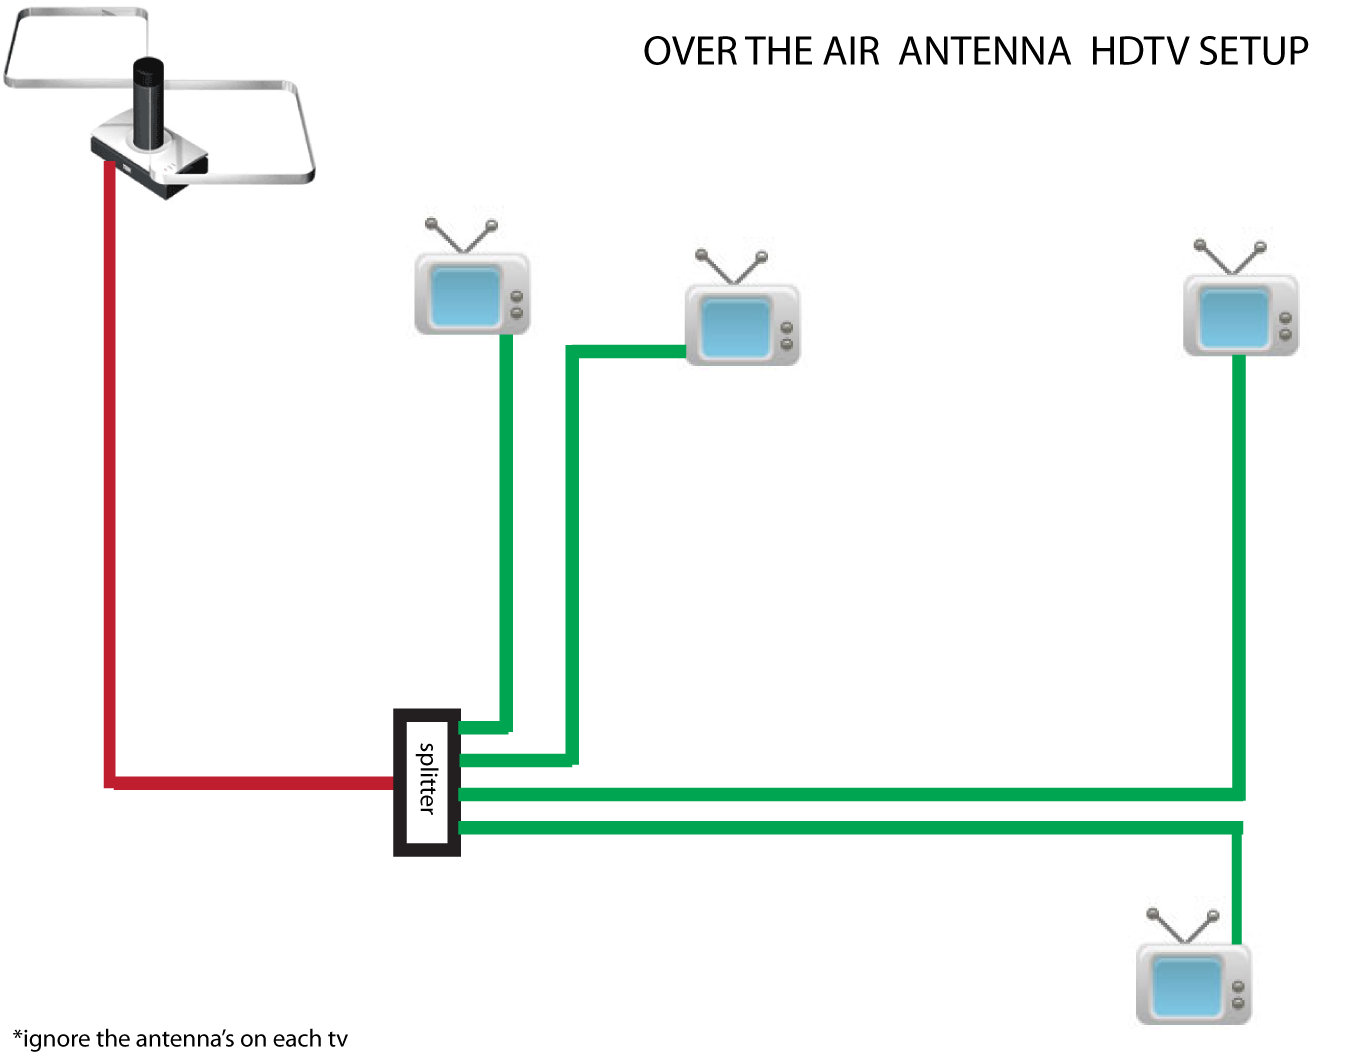 how to read simple wiring diagrams lighting circuit diagram free tv via whole house antenna setup | tackling techy troubles